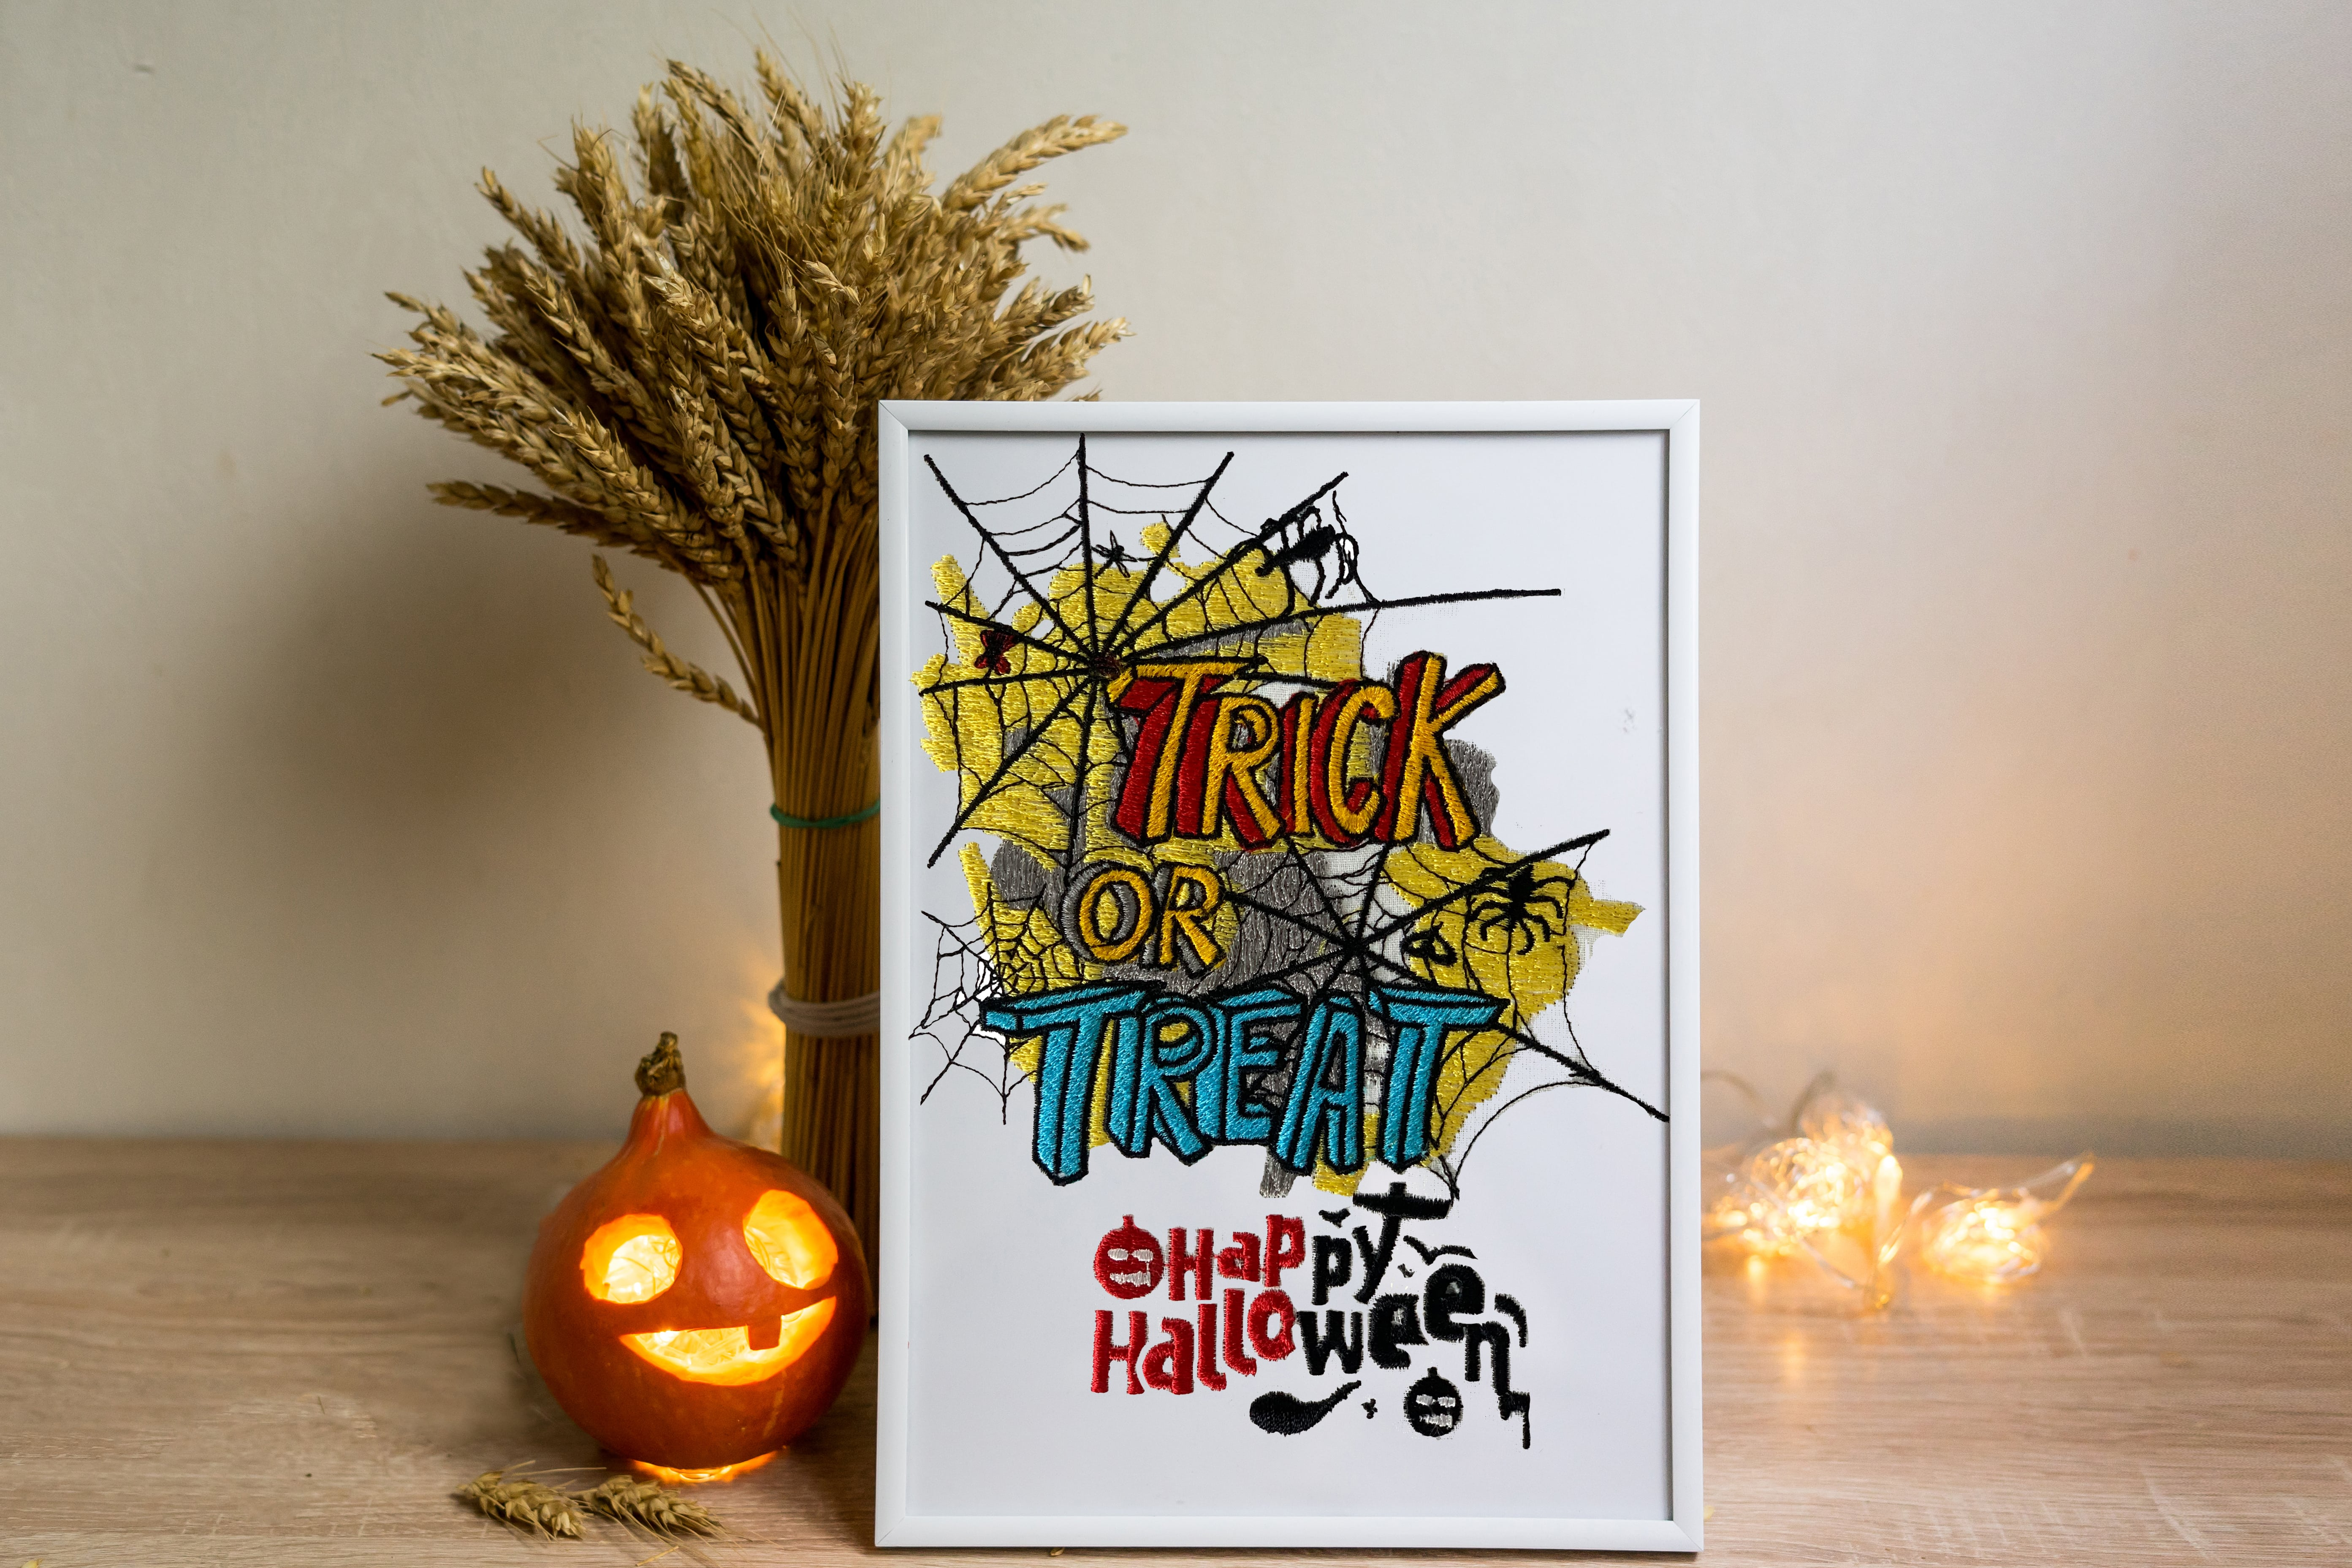 Trick Treat Text Halloween Poster Embroidery design with spider net background